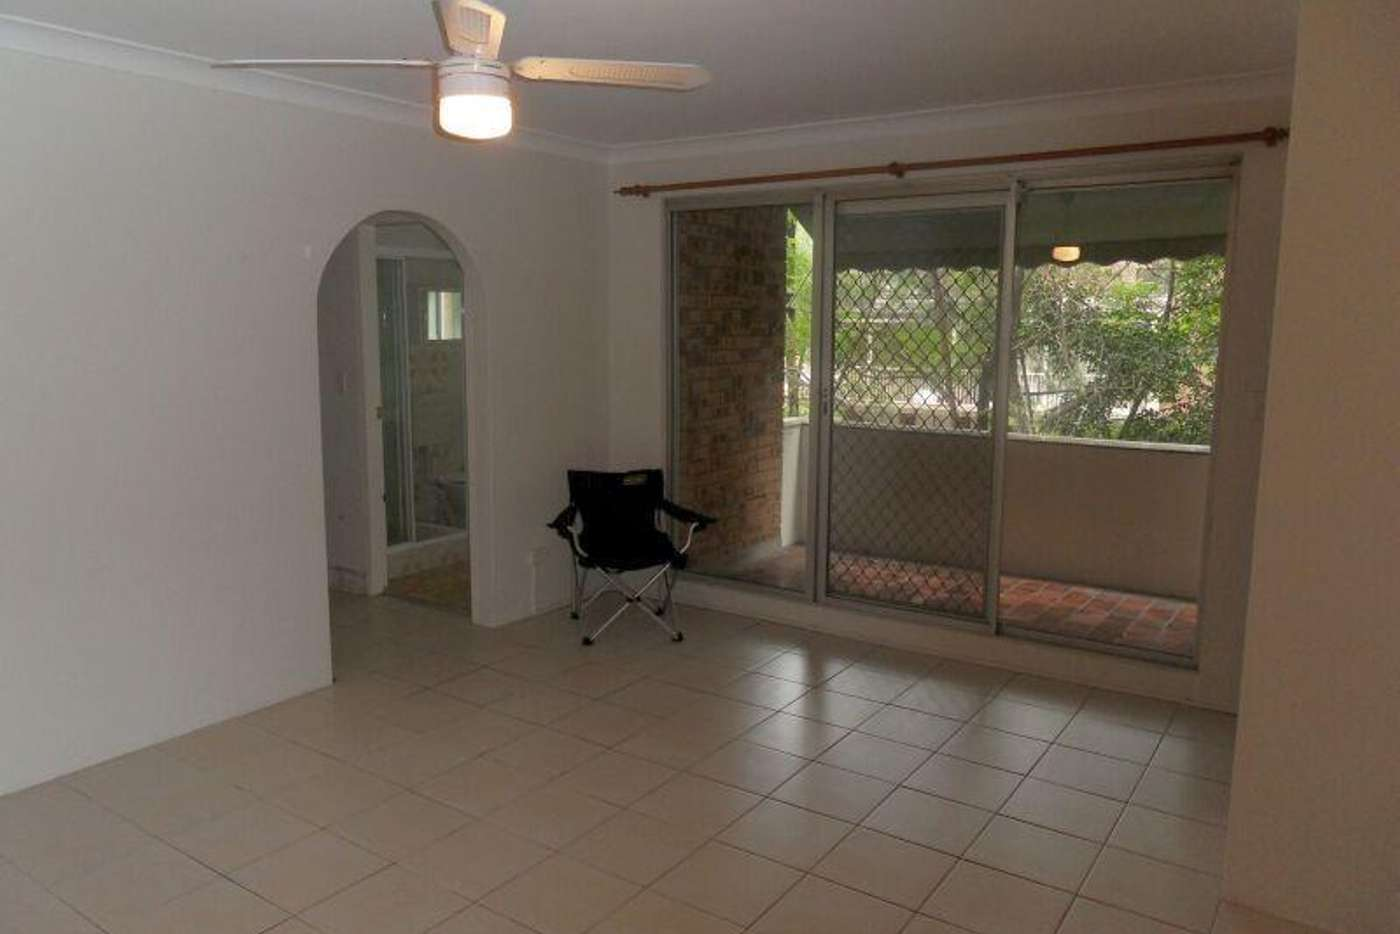 Sixth view of Homely apartment listing, 2/22-24 Thomas Street, Parramatta NSW 2150